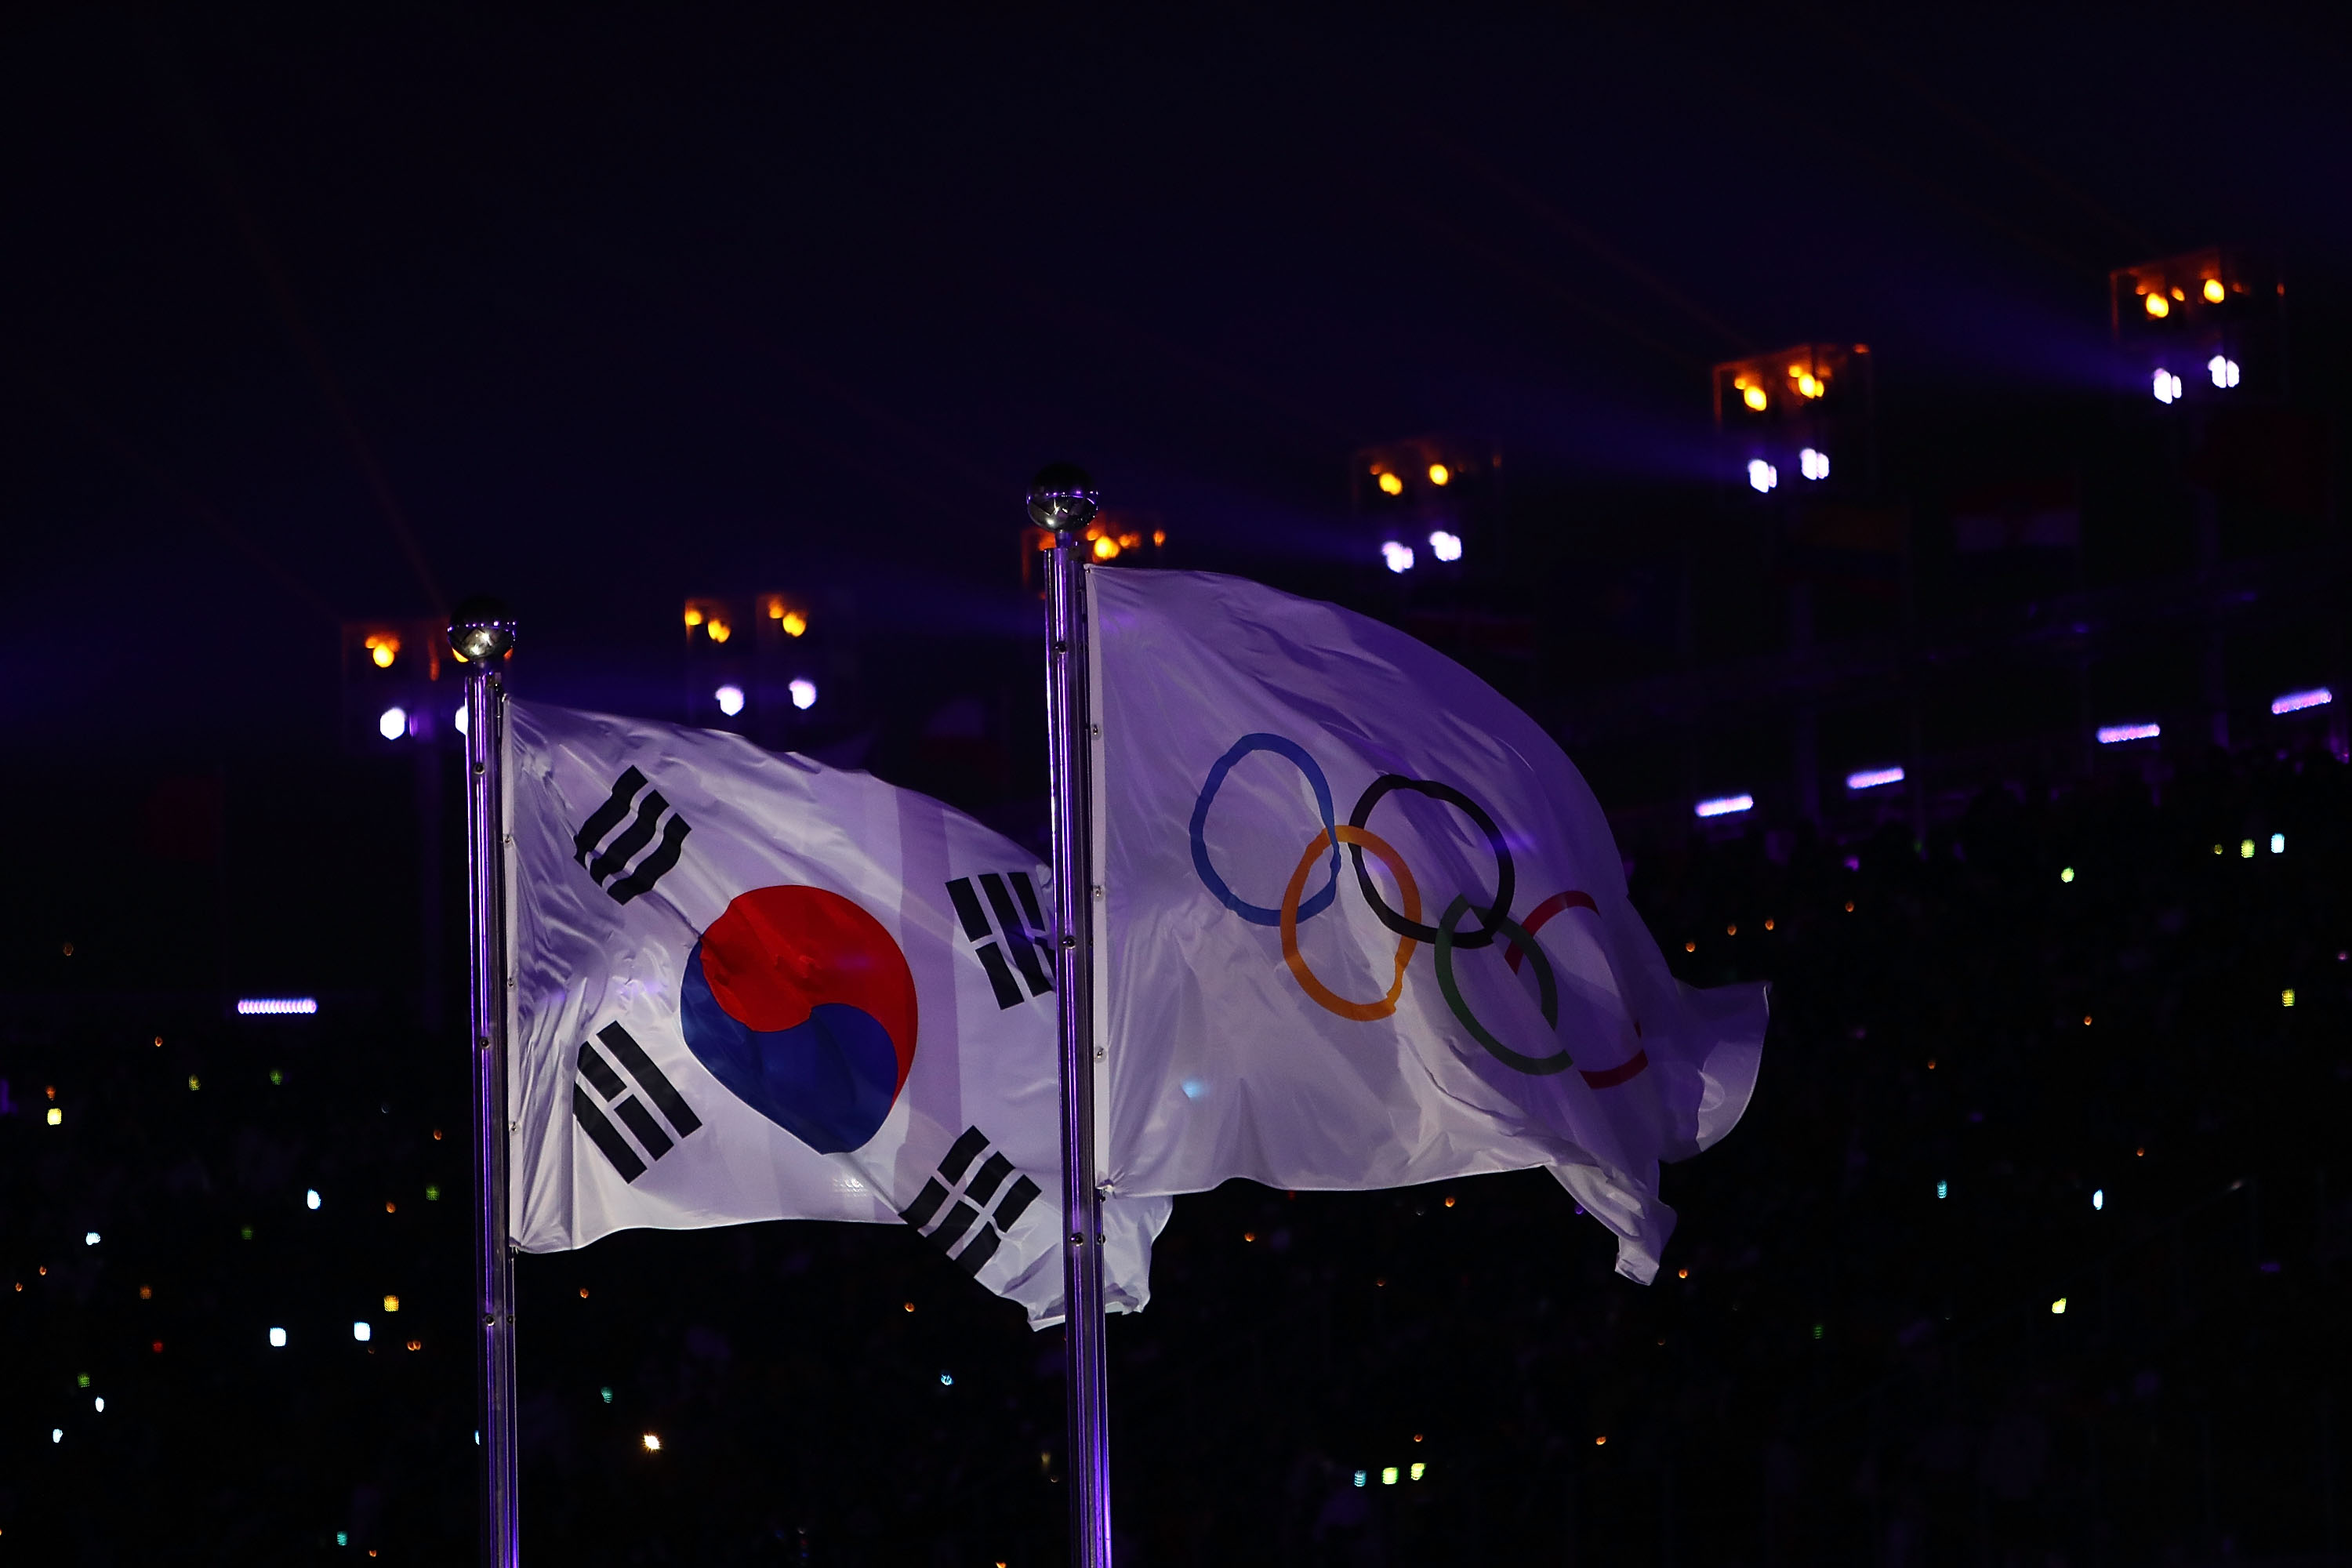 PYEONGCHANG-GUN, SOUTH KOREA - FEBRUARY 09:  The Olympic and South Korean flags fly during the Opening Ceremony of the PyeongChang 2018 Winter Olympic Games at PyeongChang Olympic Stadium on February 9, 2018 in Pyeongchang-gun, South Korea.  fee liable image, copyright © ATP  Amin JAMALI  XXIII. OLYMPIC WINTER GAMES PYEONGCHANG 2018: OPENING CEREMONY,  PyeongChang, Korea, Winter Olympics; PyeongChang Olympic Stadium, on 9. February 2018, fee liable image, copyright © ATP / Amin JAMALI  Featuring: The Olympic and South Korean flags fly Where: Pyeongchang, Gangwon Province, South Korea When: 09 Feb 2018 Credit: ATP/WENN.com  **Not available for publication in Germany or France. No Contact Music.**